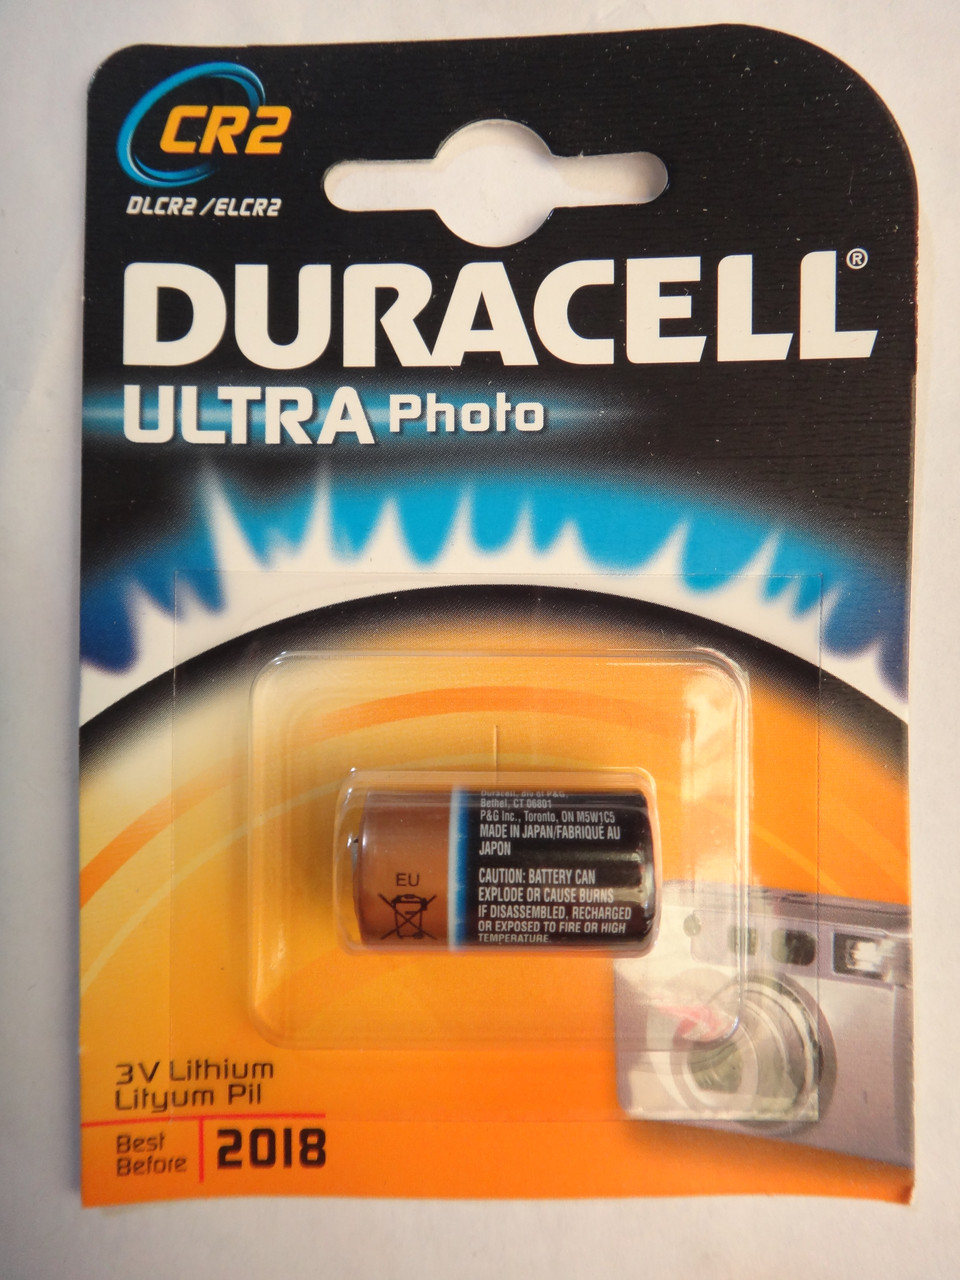 Батарейка CR2 3v Lithium DURACELL ULTRA Photo Lityum Pil DLCR2/ELCR2 CR123A 6205